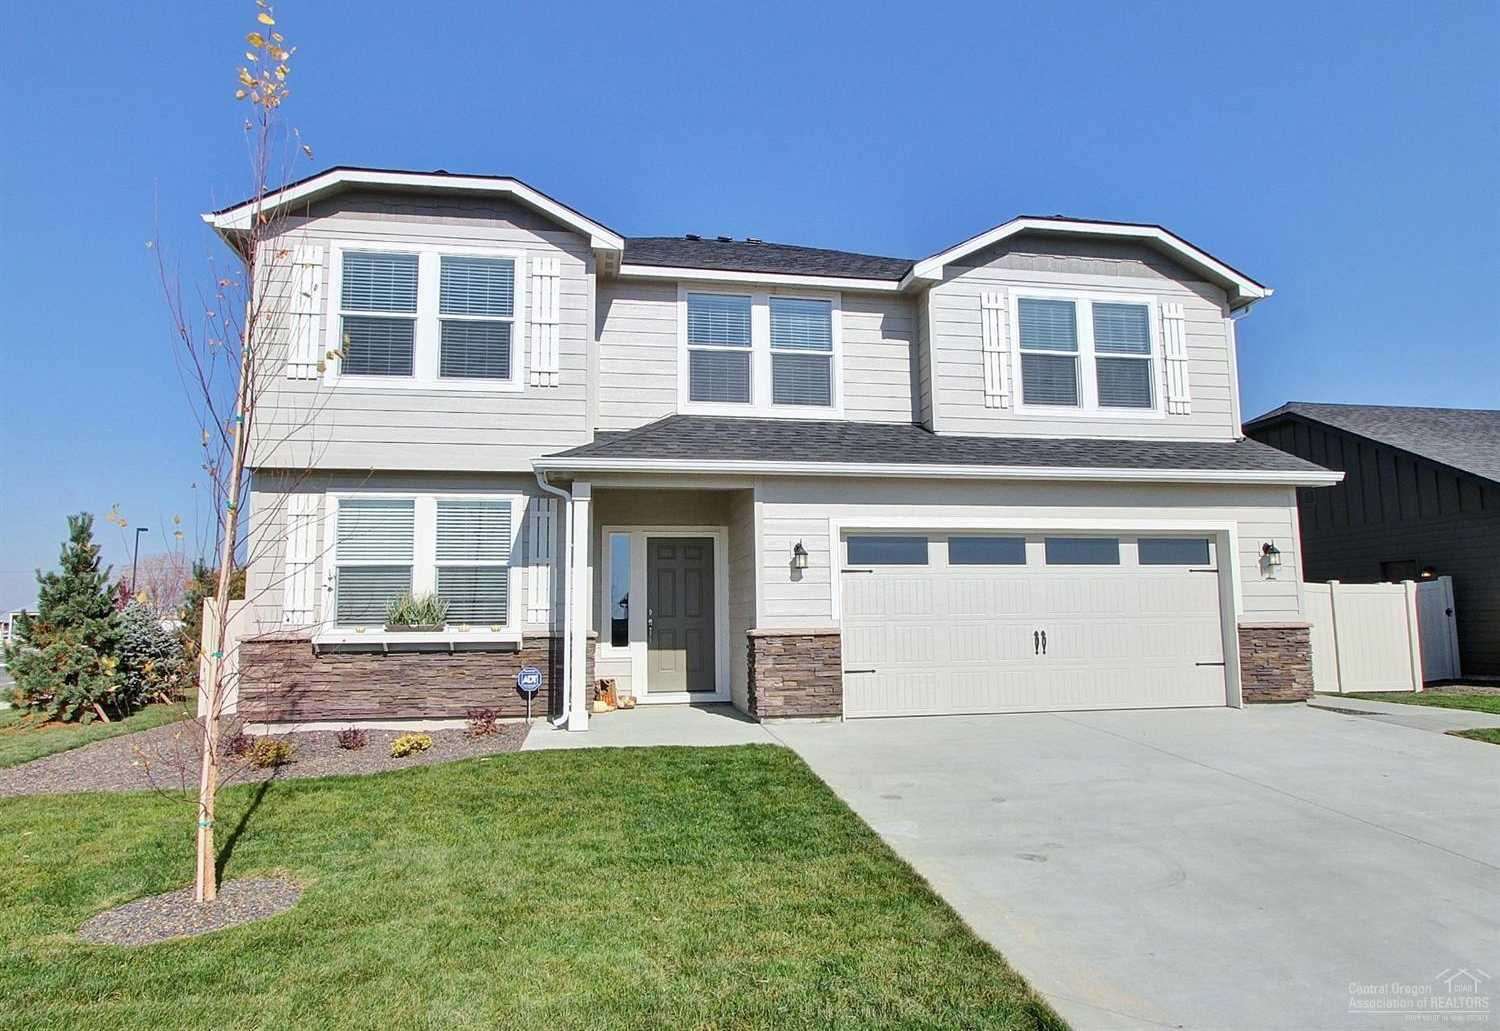 $411,376 - 5Br/3Ba -  for Sale in Sisters